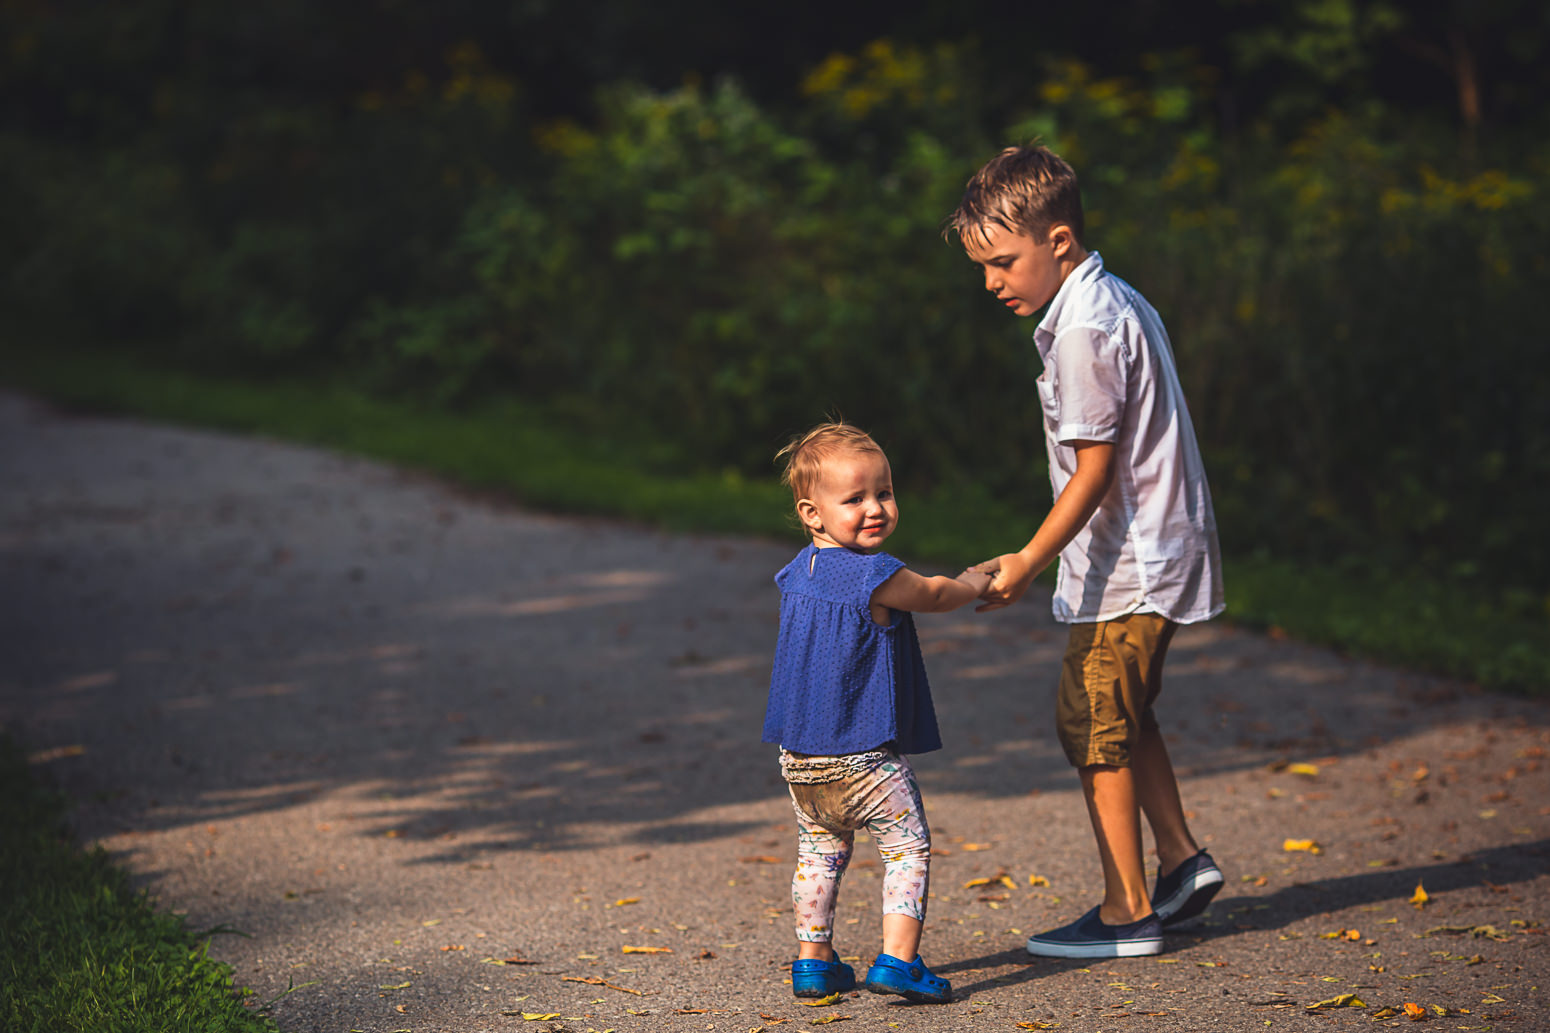 Brother holding baby sister's hand on walking path